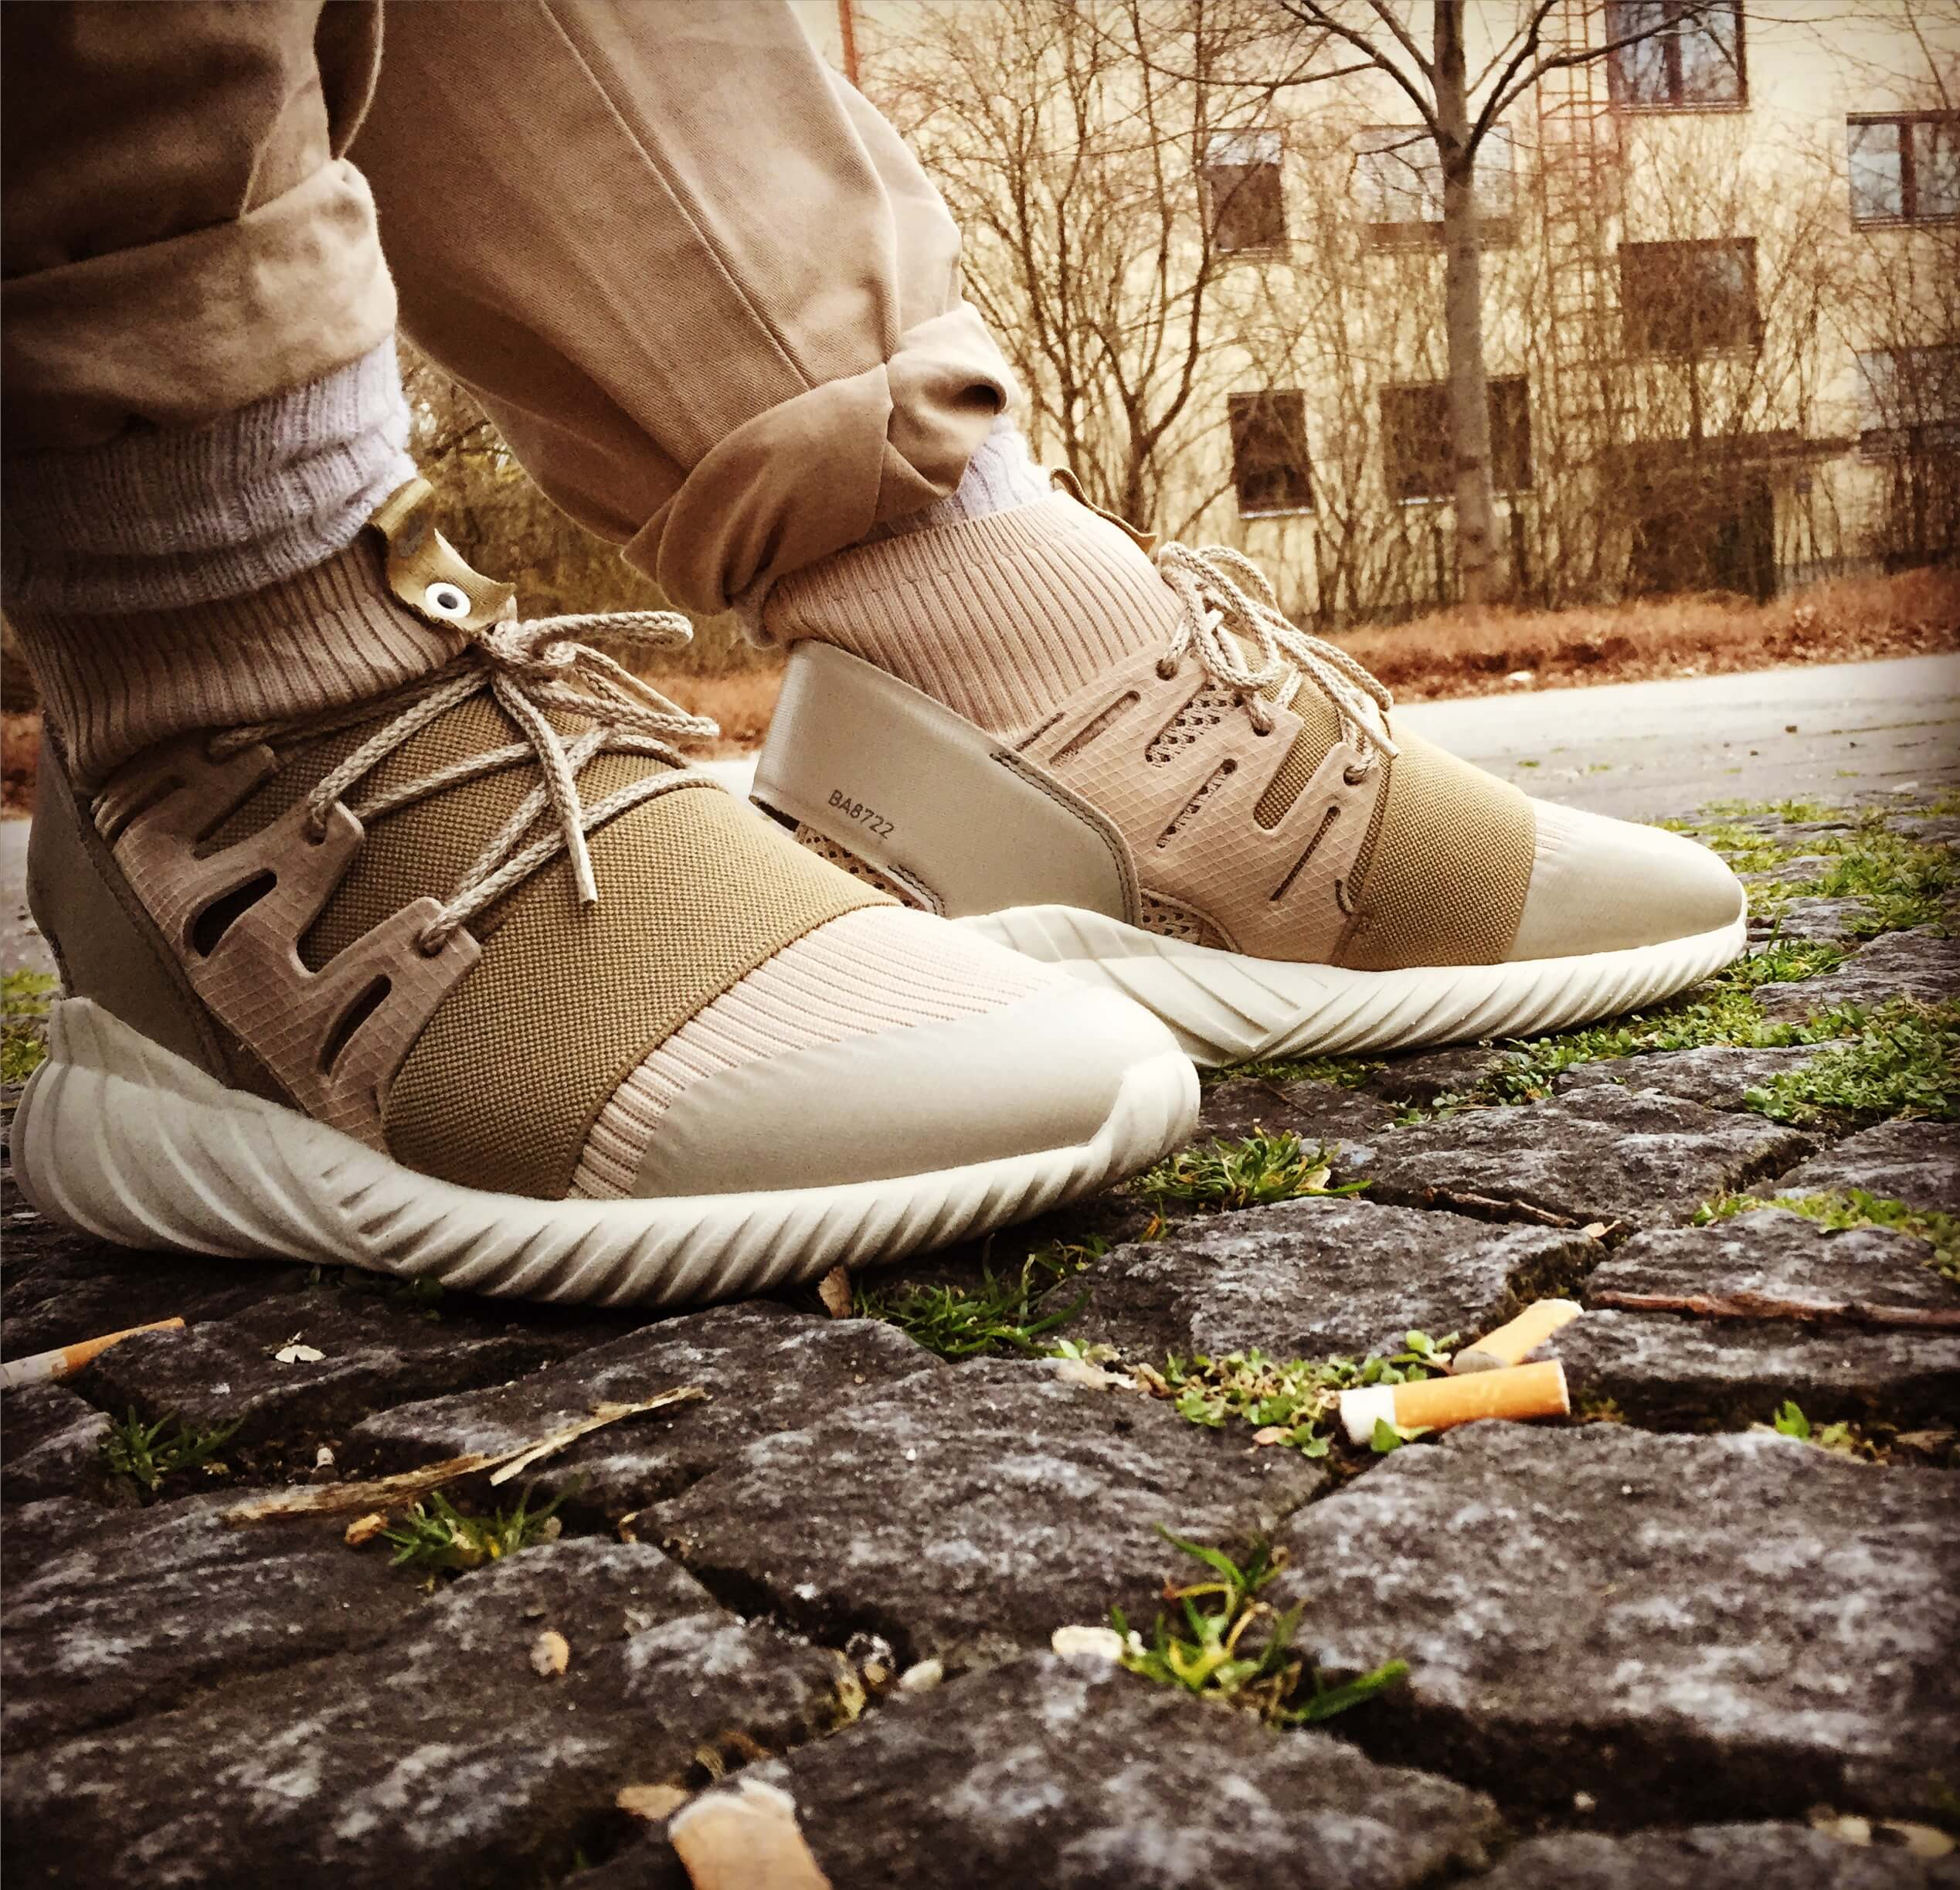 Adidas-Tubular-Doom-Special-Forces-Side-View-Benstah-Onfeet